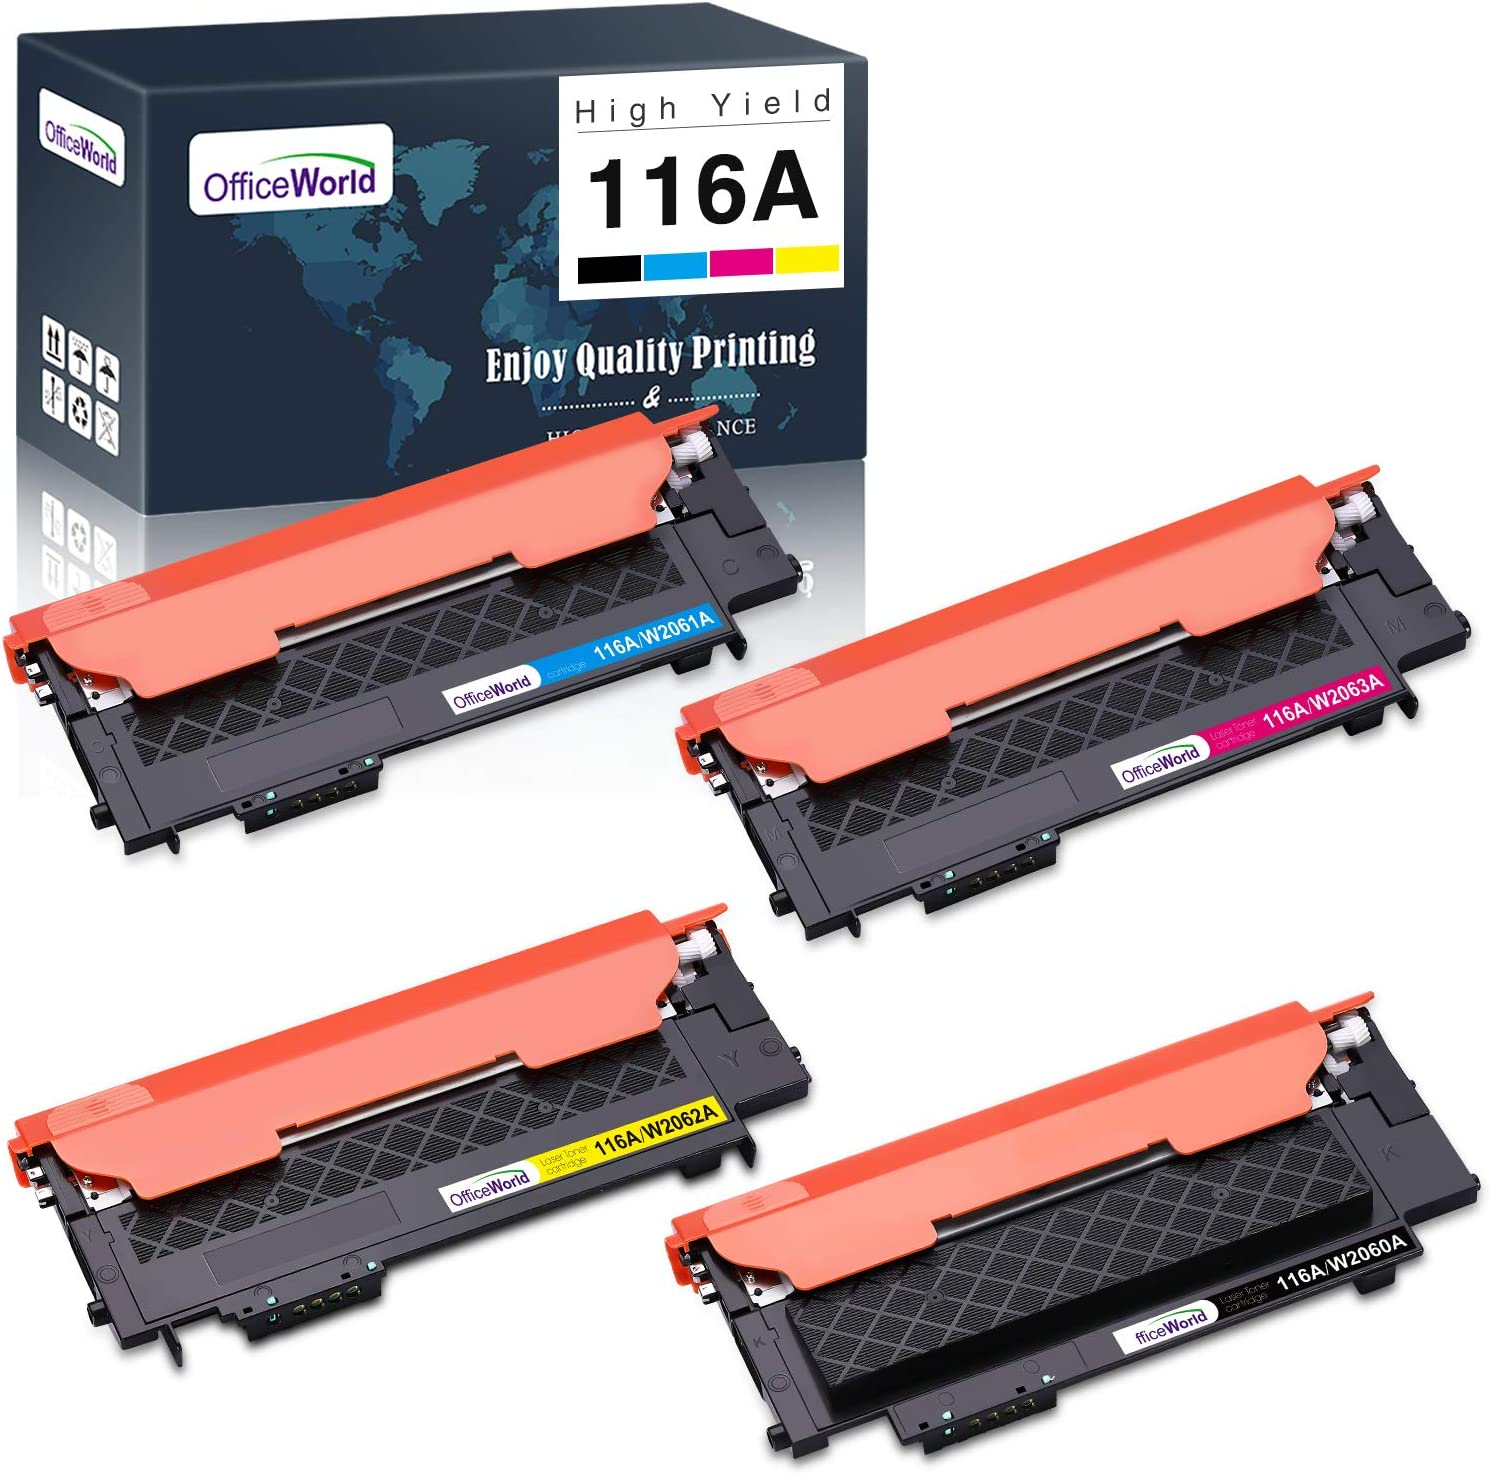 OfficeWorld 116A (with Chip) Toner Cartridge Replacement for HP 116A W2060A W2061A W2062A W2063A, for HP Color Laser MFP 179fnw MFP 178nw 150a 150nw Printer, (Black Cyan Yellow Magenta, 4-Pack)